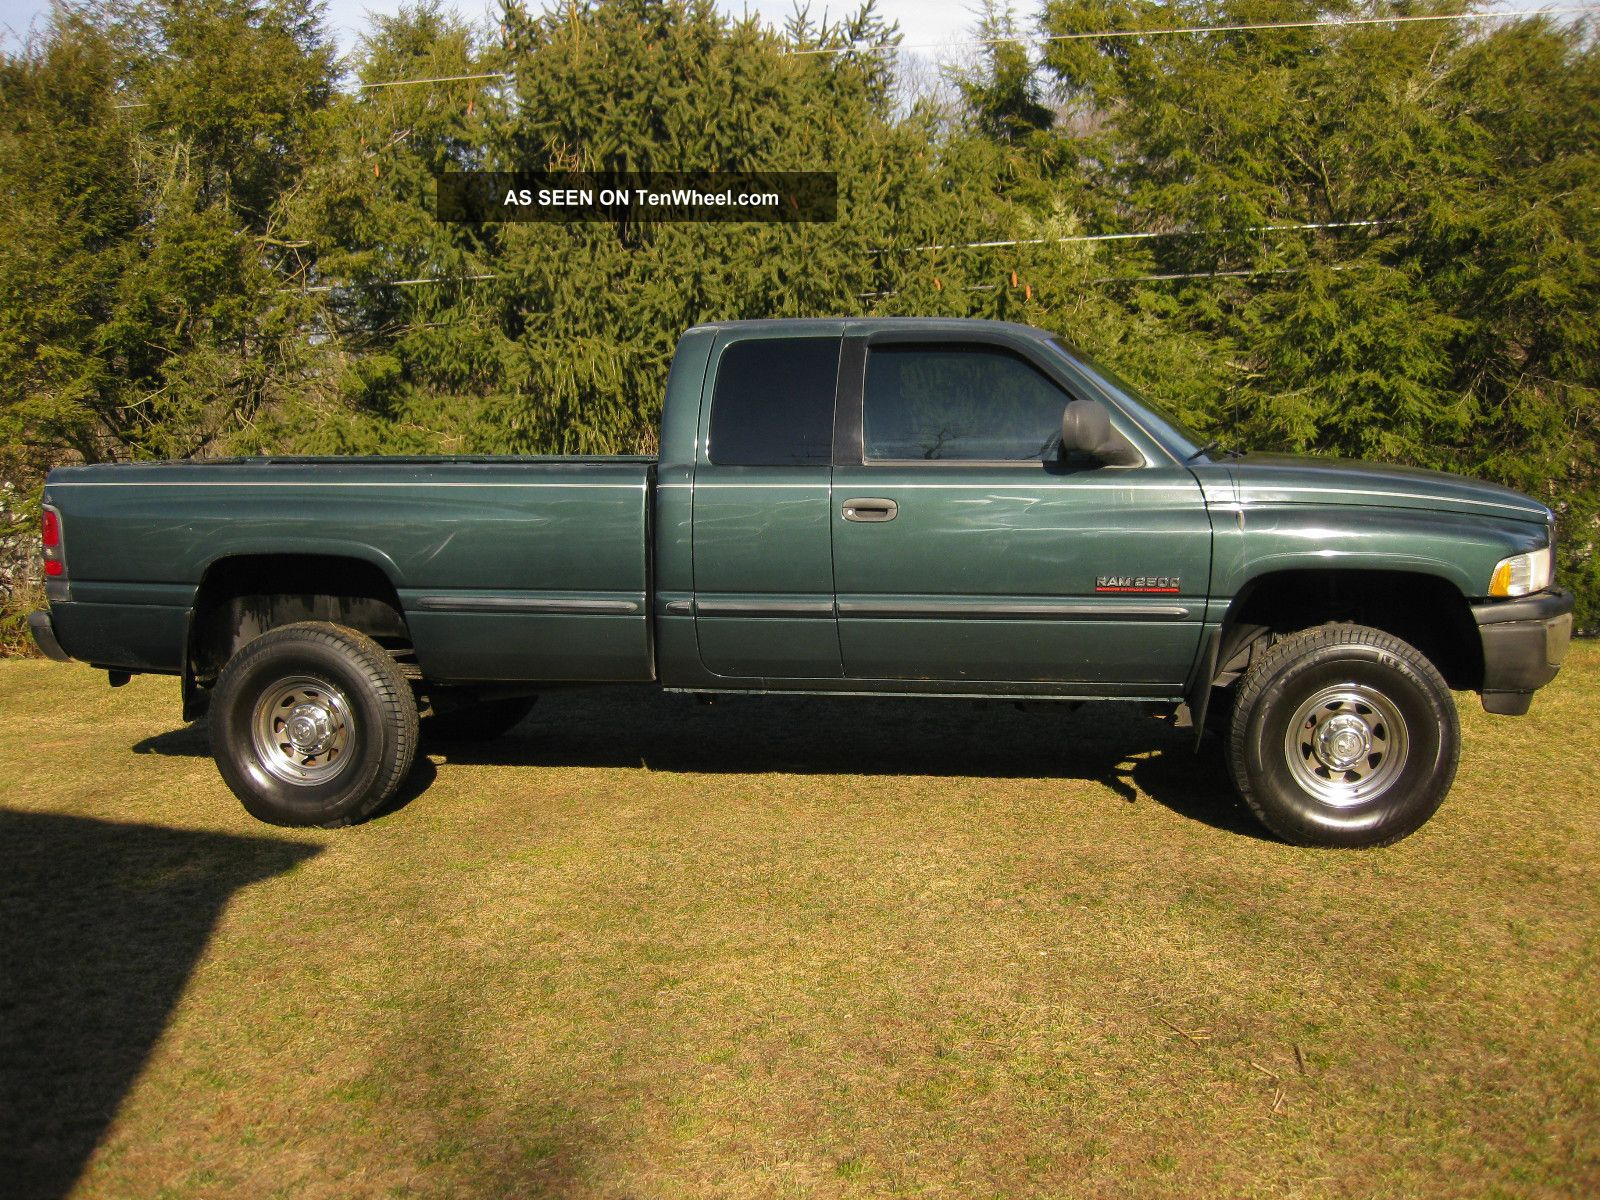 1999 dodge ram 2500 diesel specs autos post. Black Bedroom Furniture Sets. Home Design Ideas